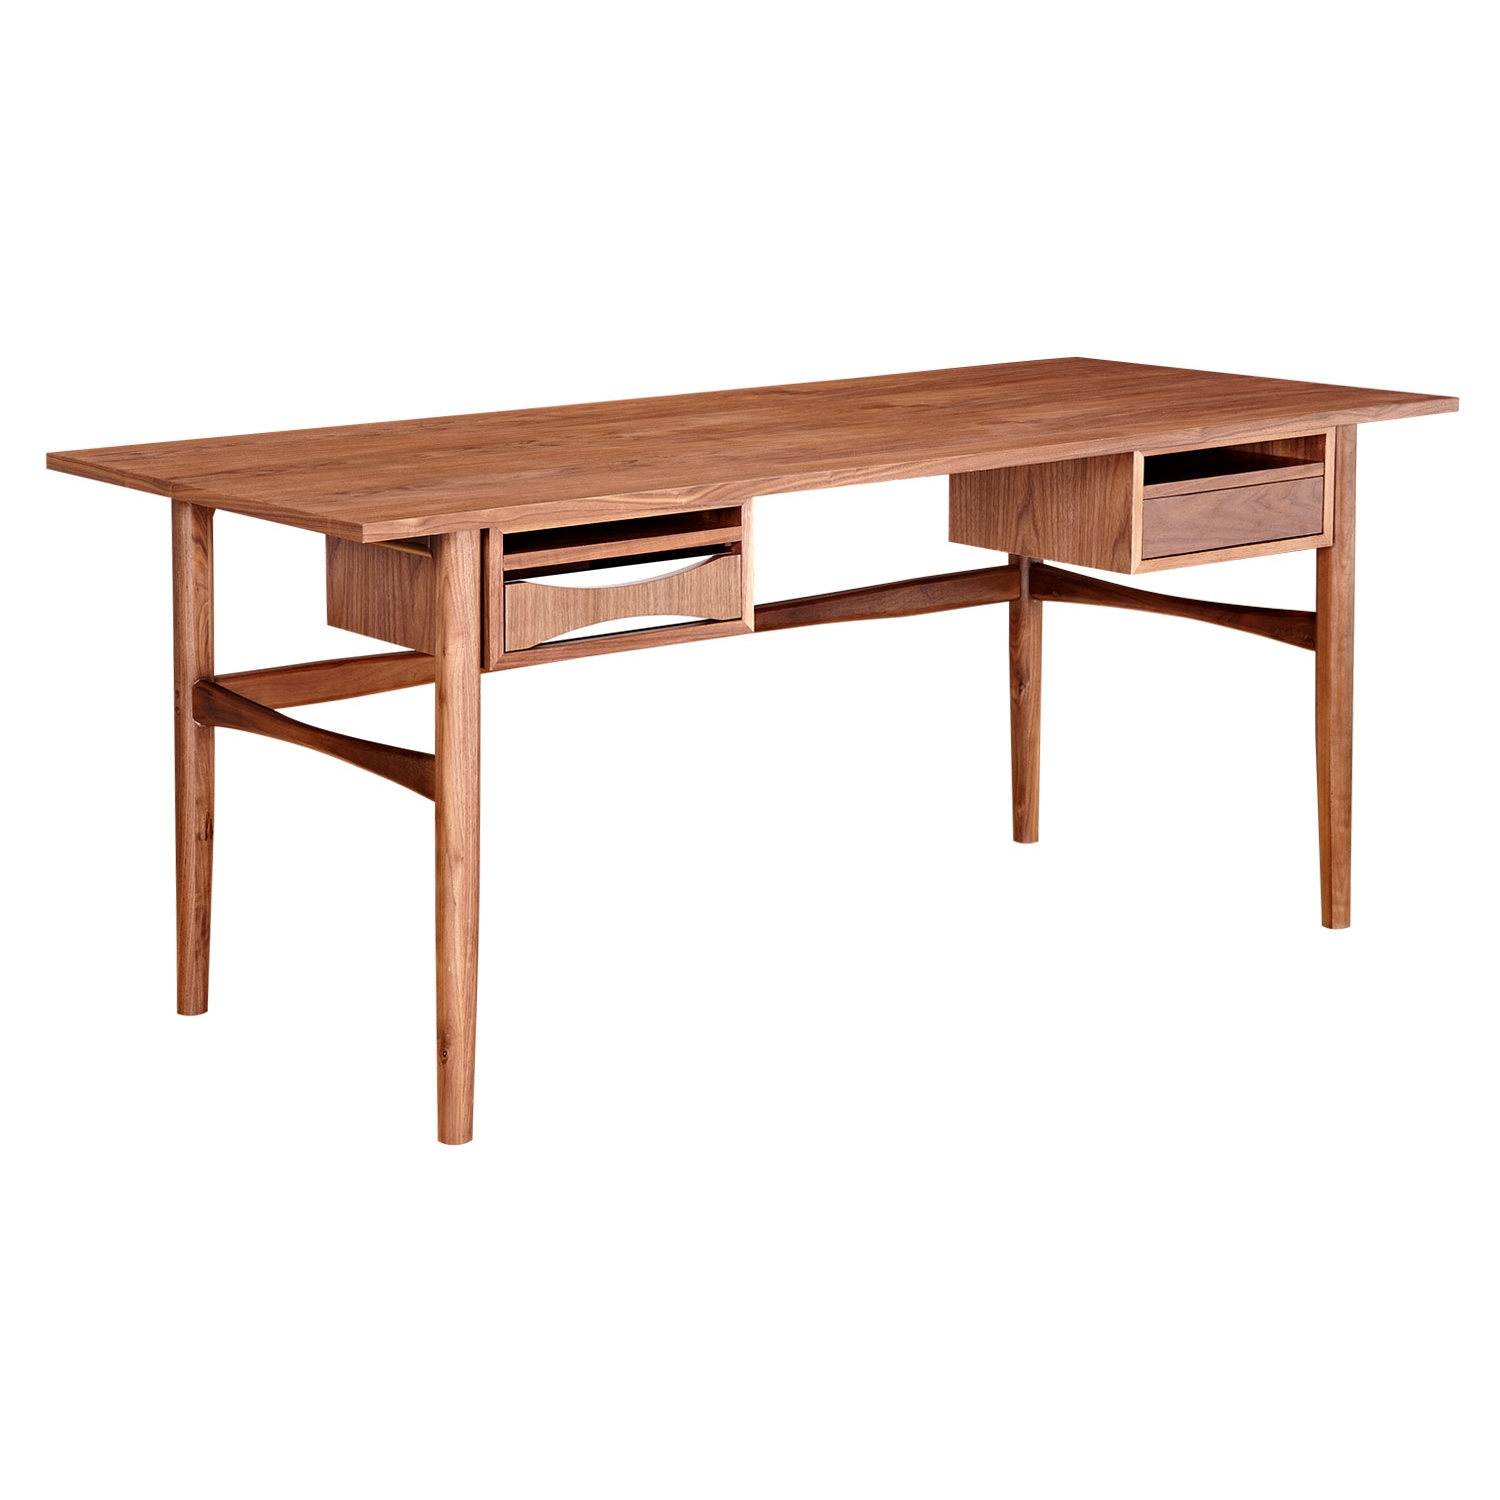 Hanna Office Desk - Walnut and White